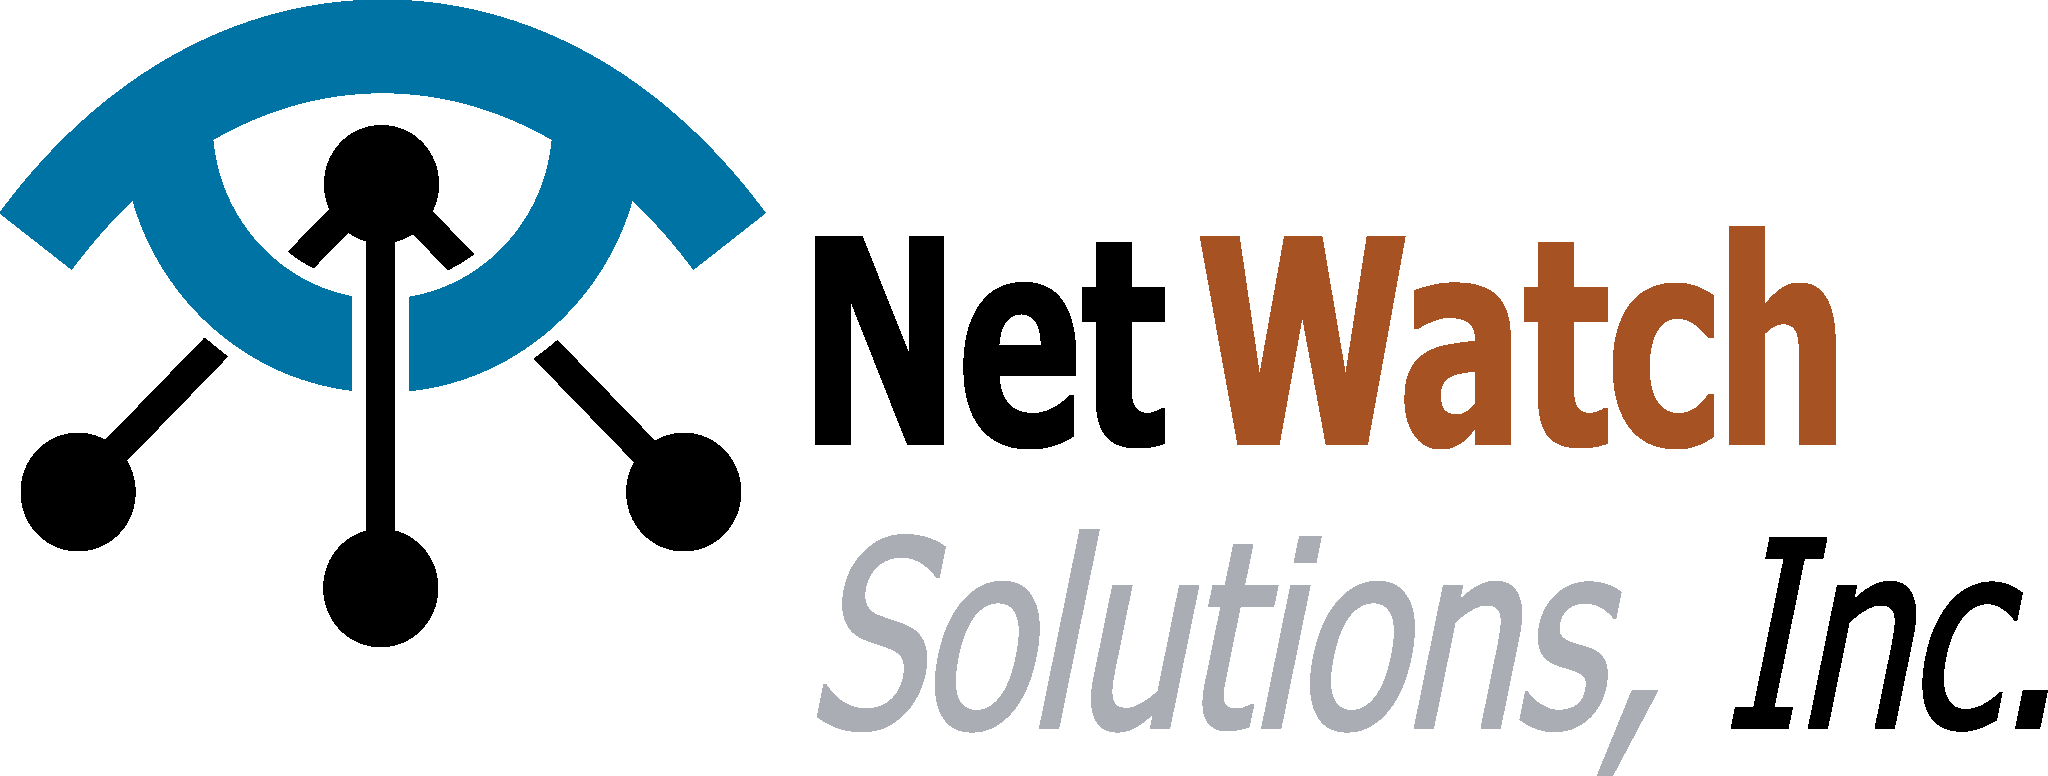 Netwatch Solutions Inc Home Page